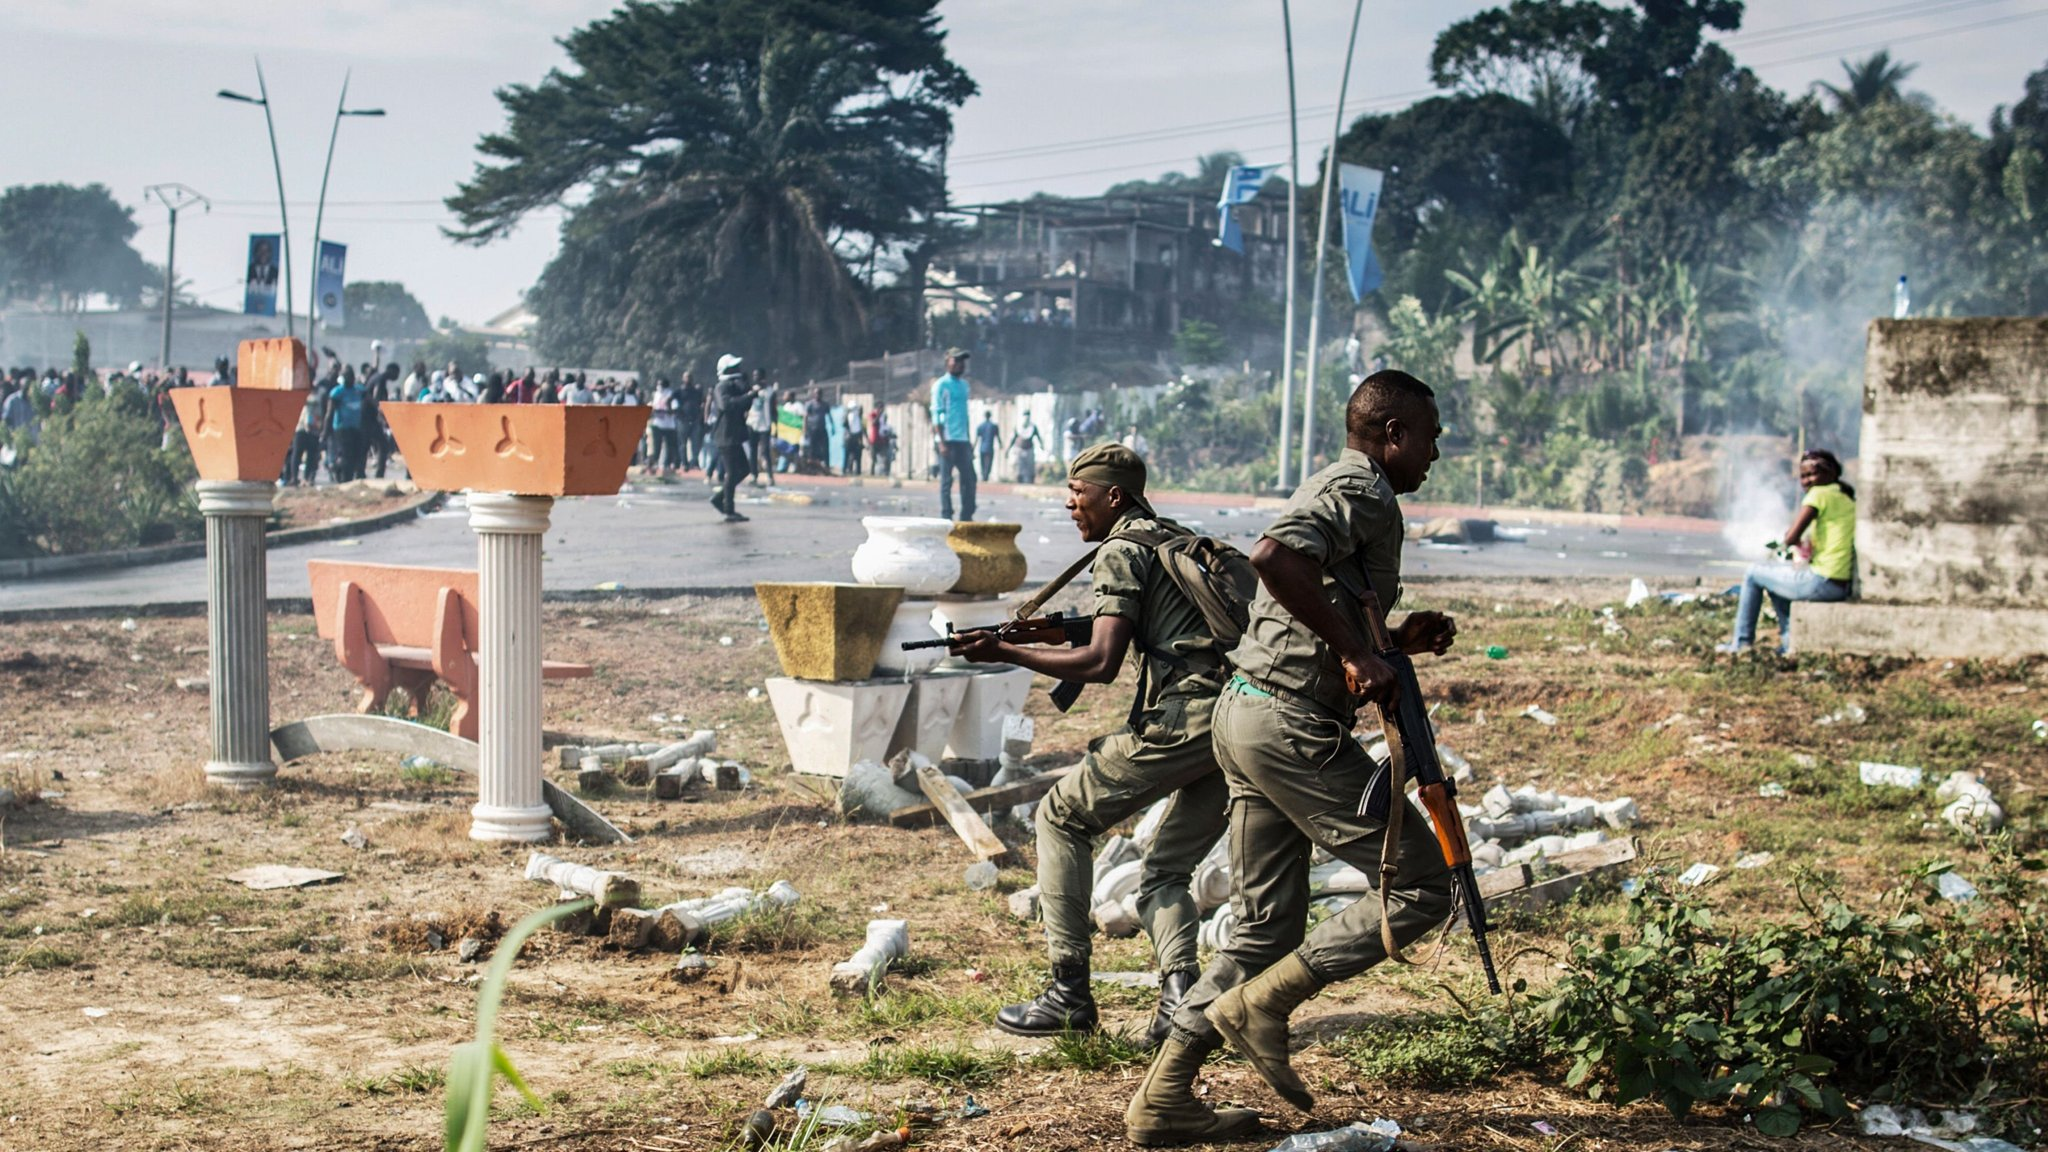 Gabon rocked by violence after Bongo scrapes disputed election   Financial  Times